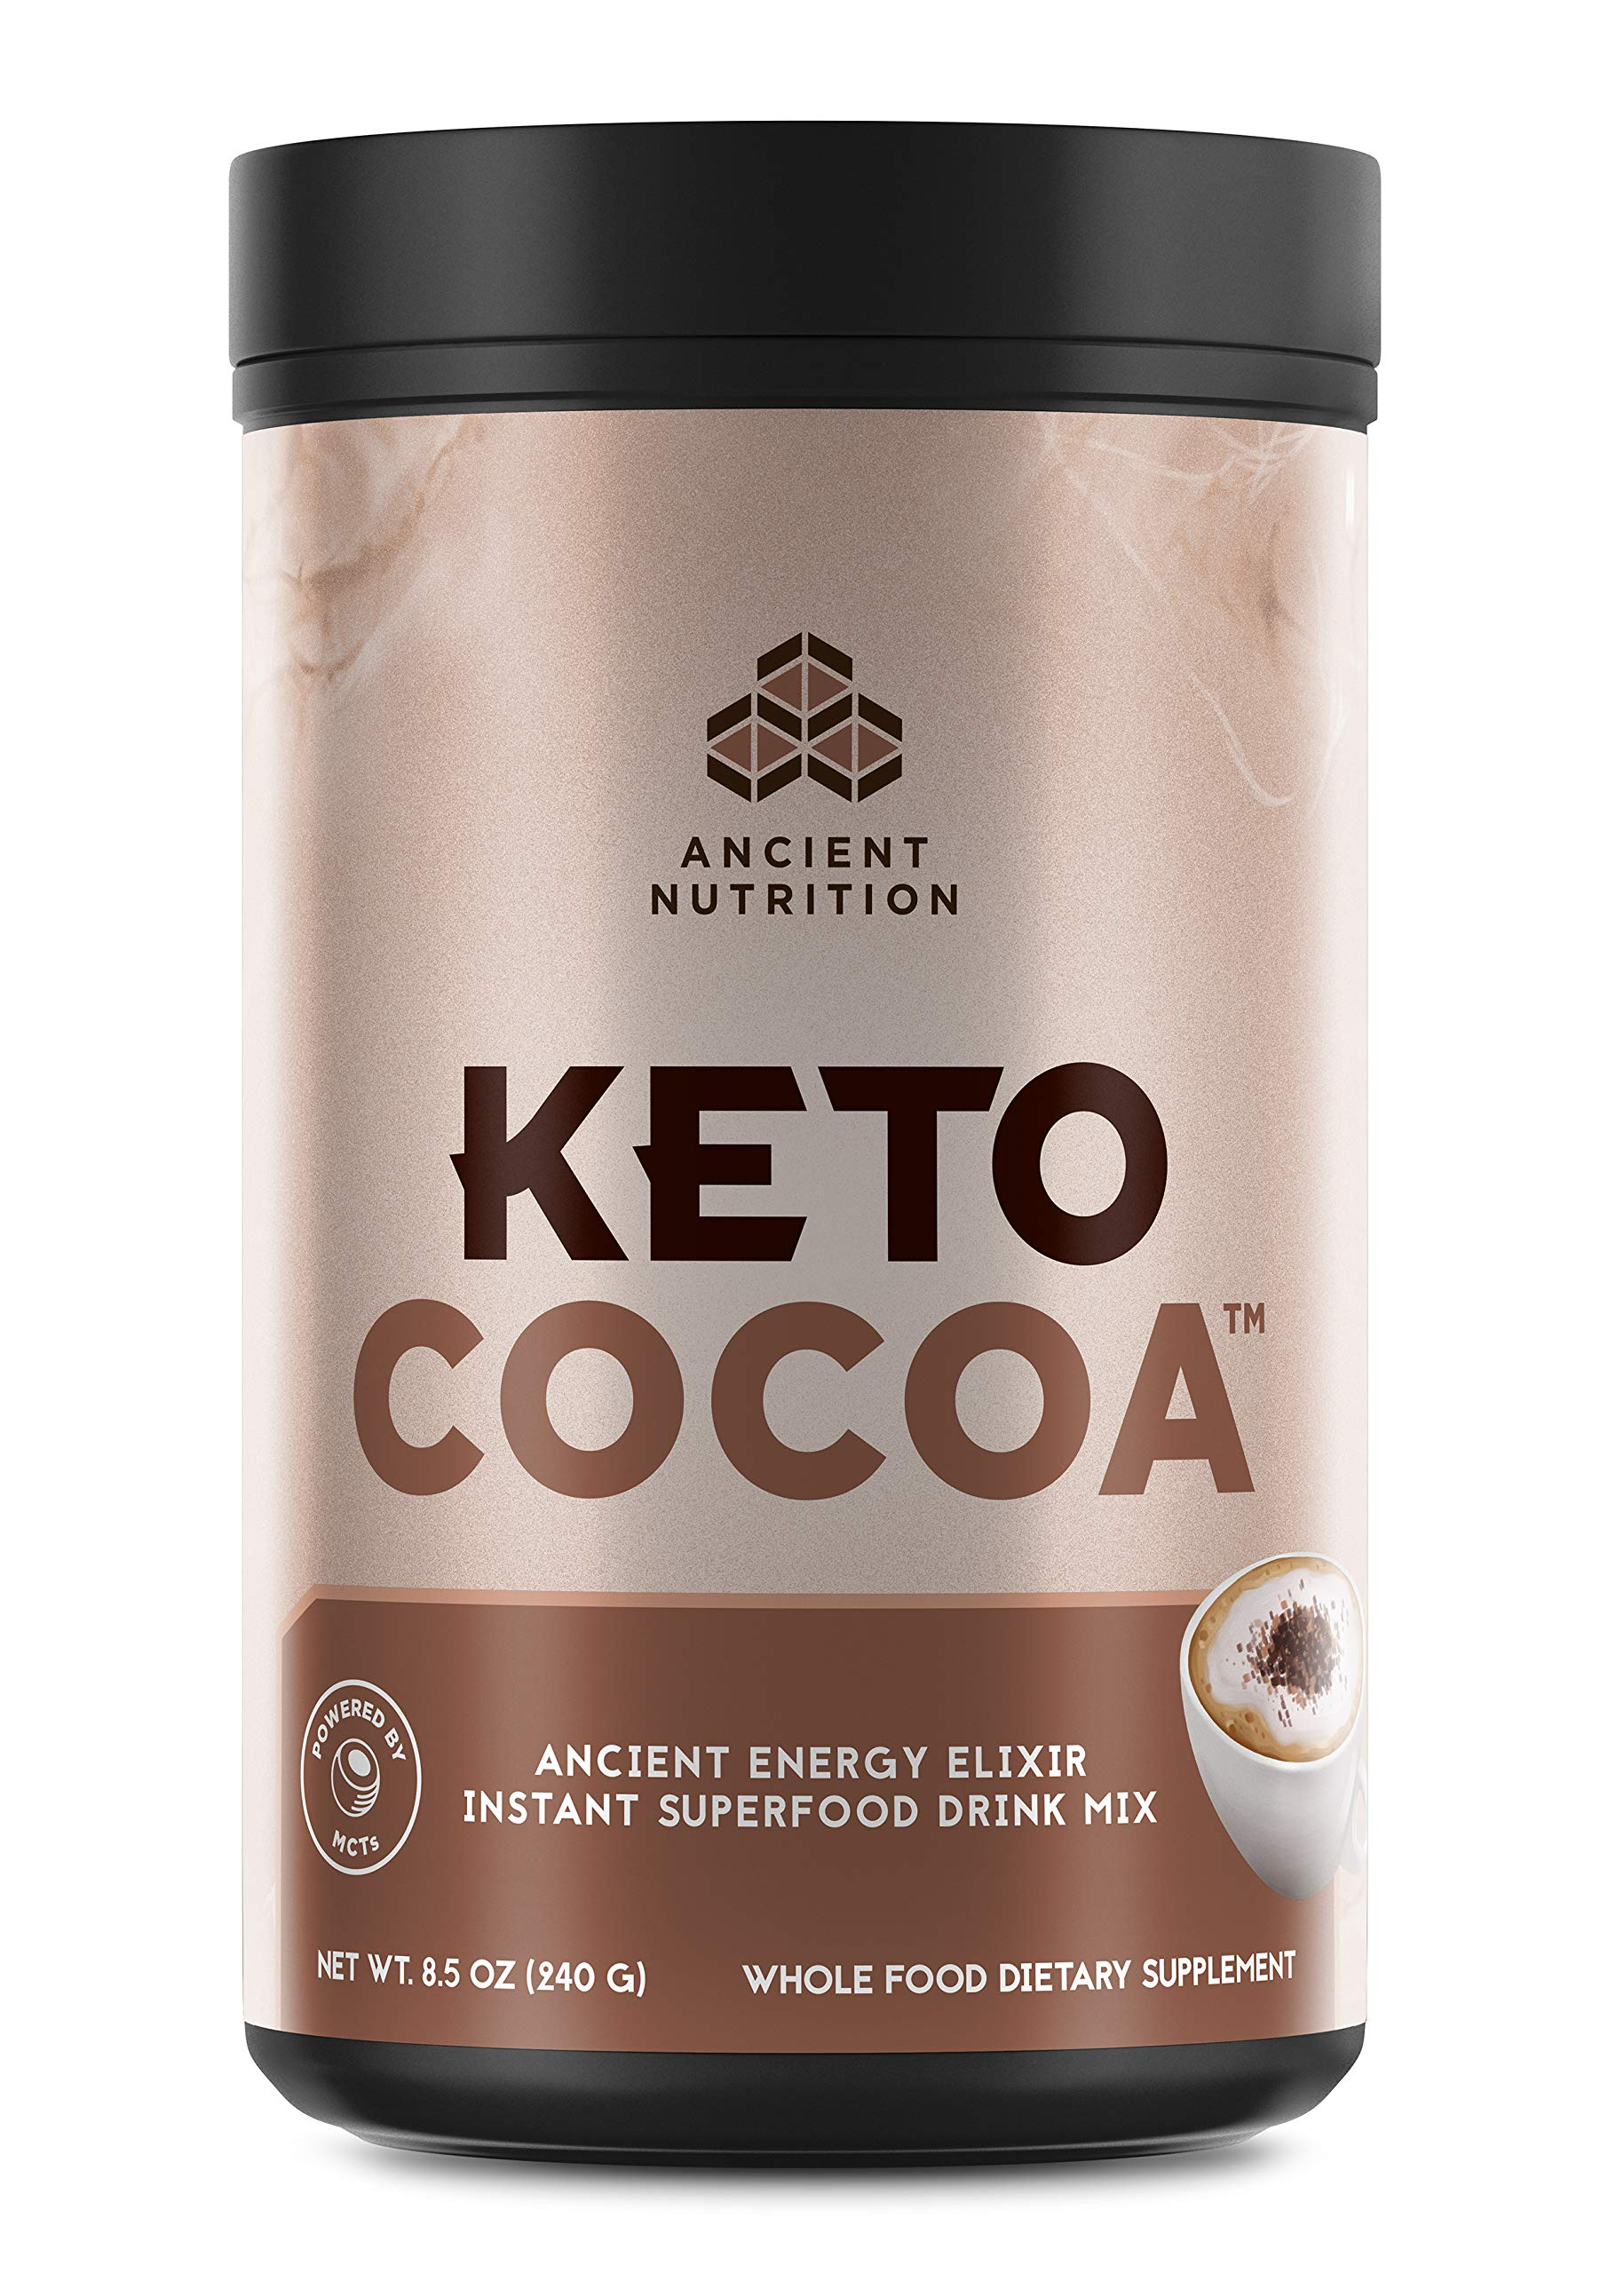 Ancient Nutrition KetoCOCOA Energy Elixir Powder, 20 Servings, Keto Diet Supplement, Hydrolyzed Collagen Peptides, MCTs from Coconut, Organic Cocoa Beans, Energy Booster by Ancient Nutrition